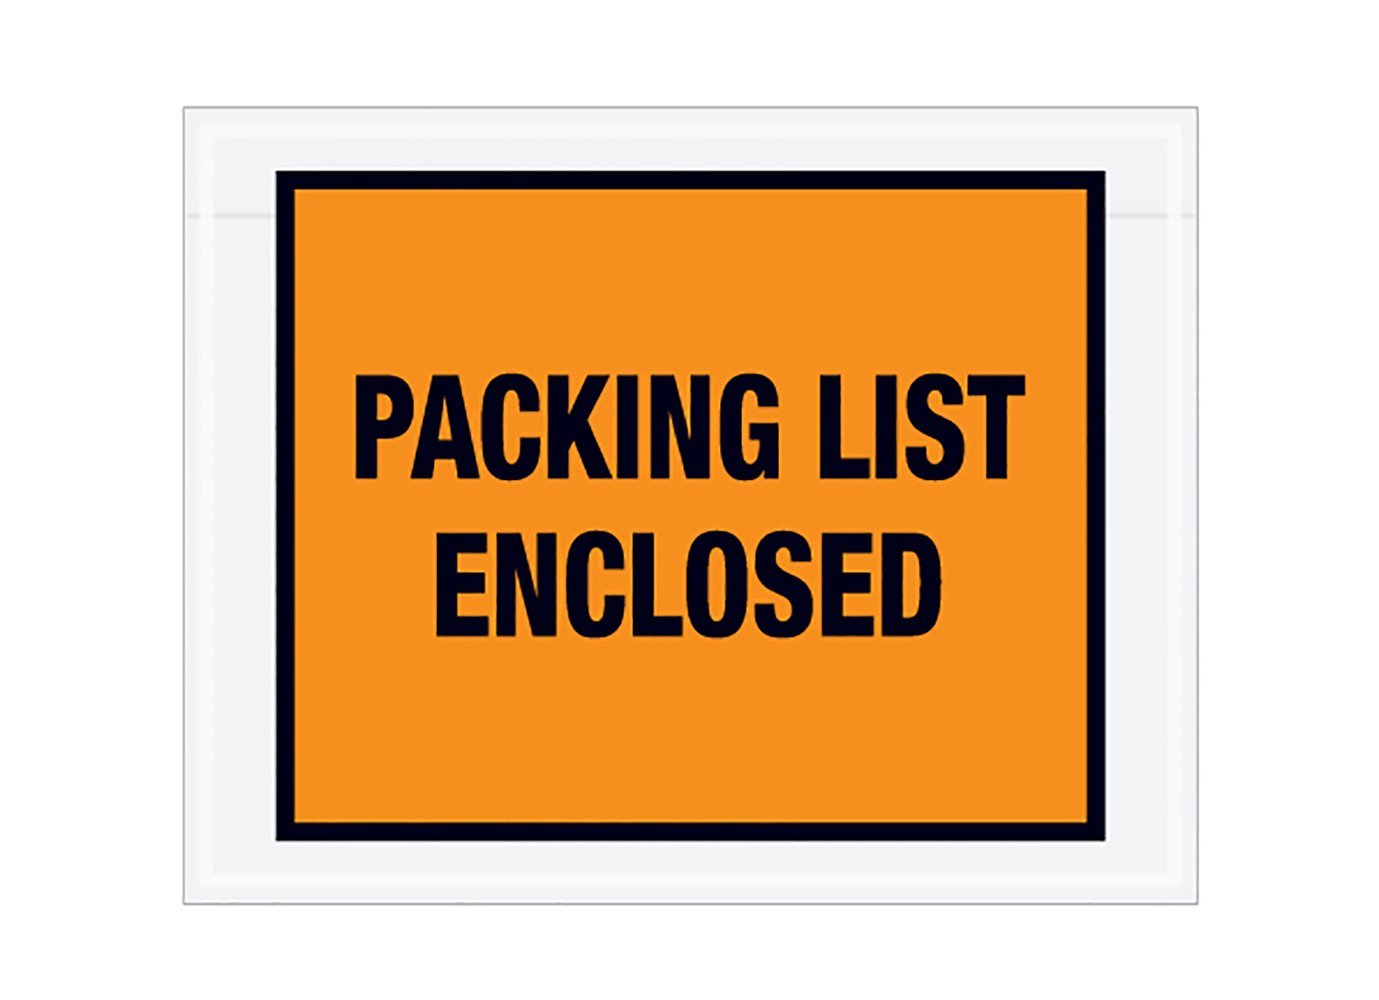 Full Face Orange Pack of 500 RetailSource E050401OF500 Packing List Enclosed 5.5 x 4.5 x 1 Envelopes 5.5 x 4.5 x 1